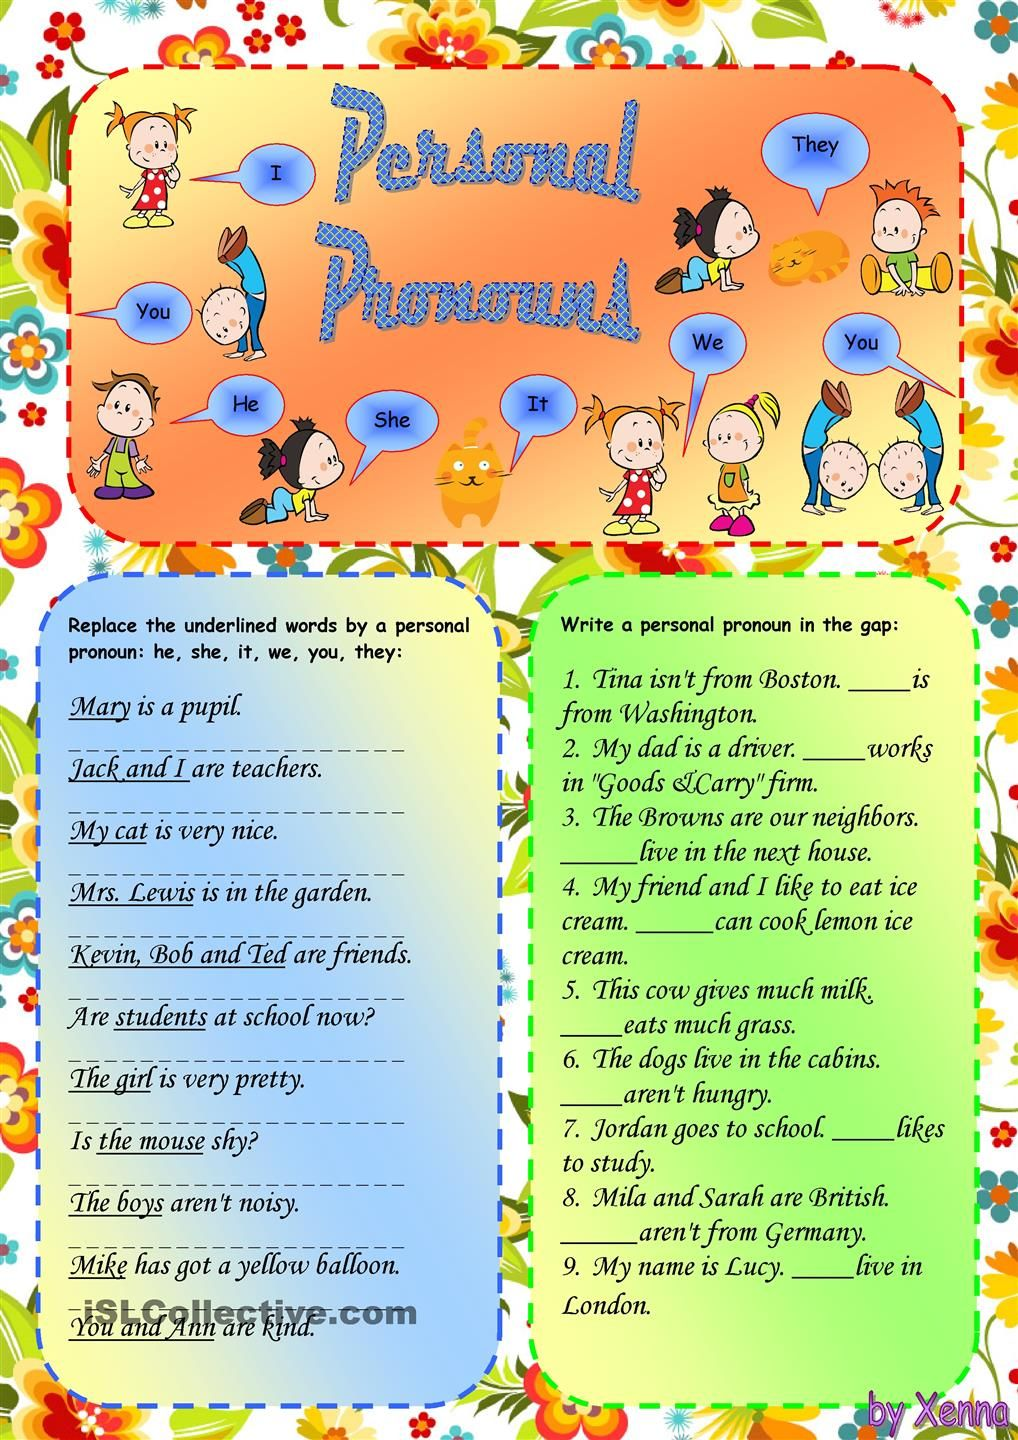 Personal Pronouns Personal Pronouns Learning Spanish Learning Spanish For Kids